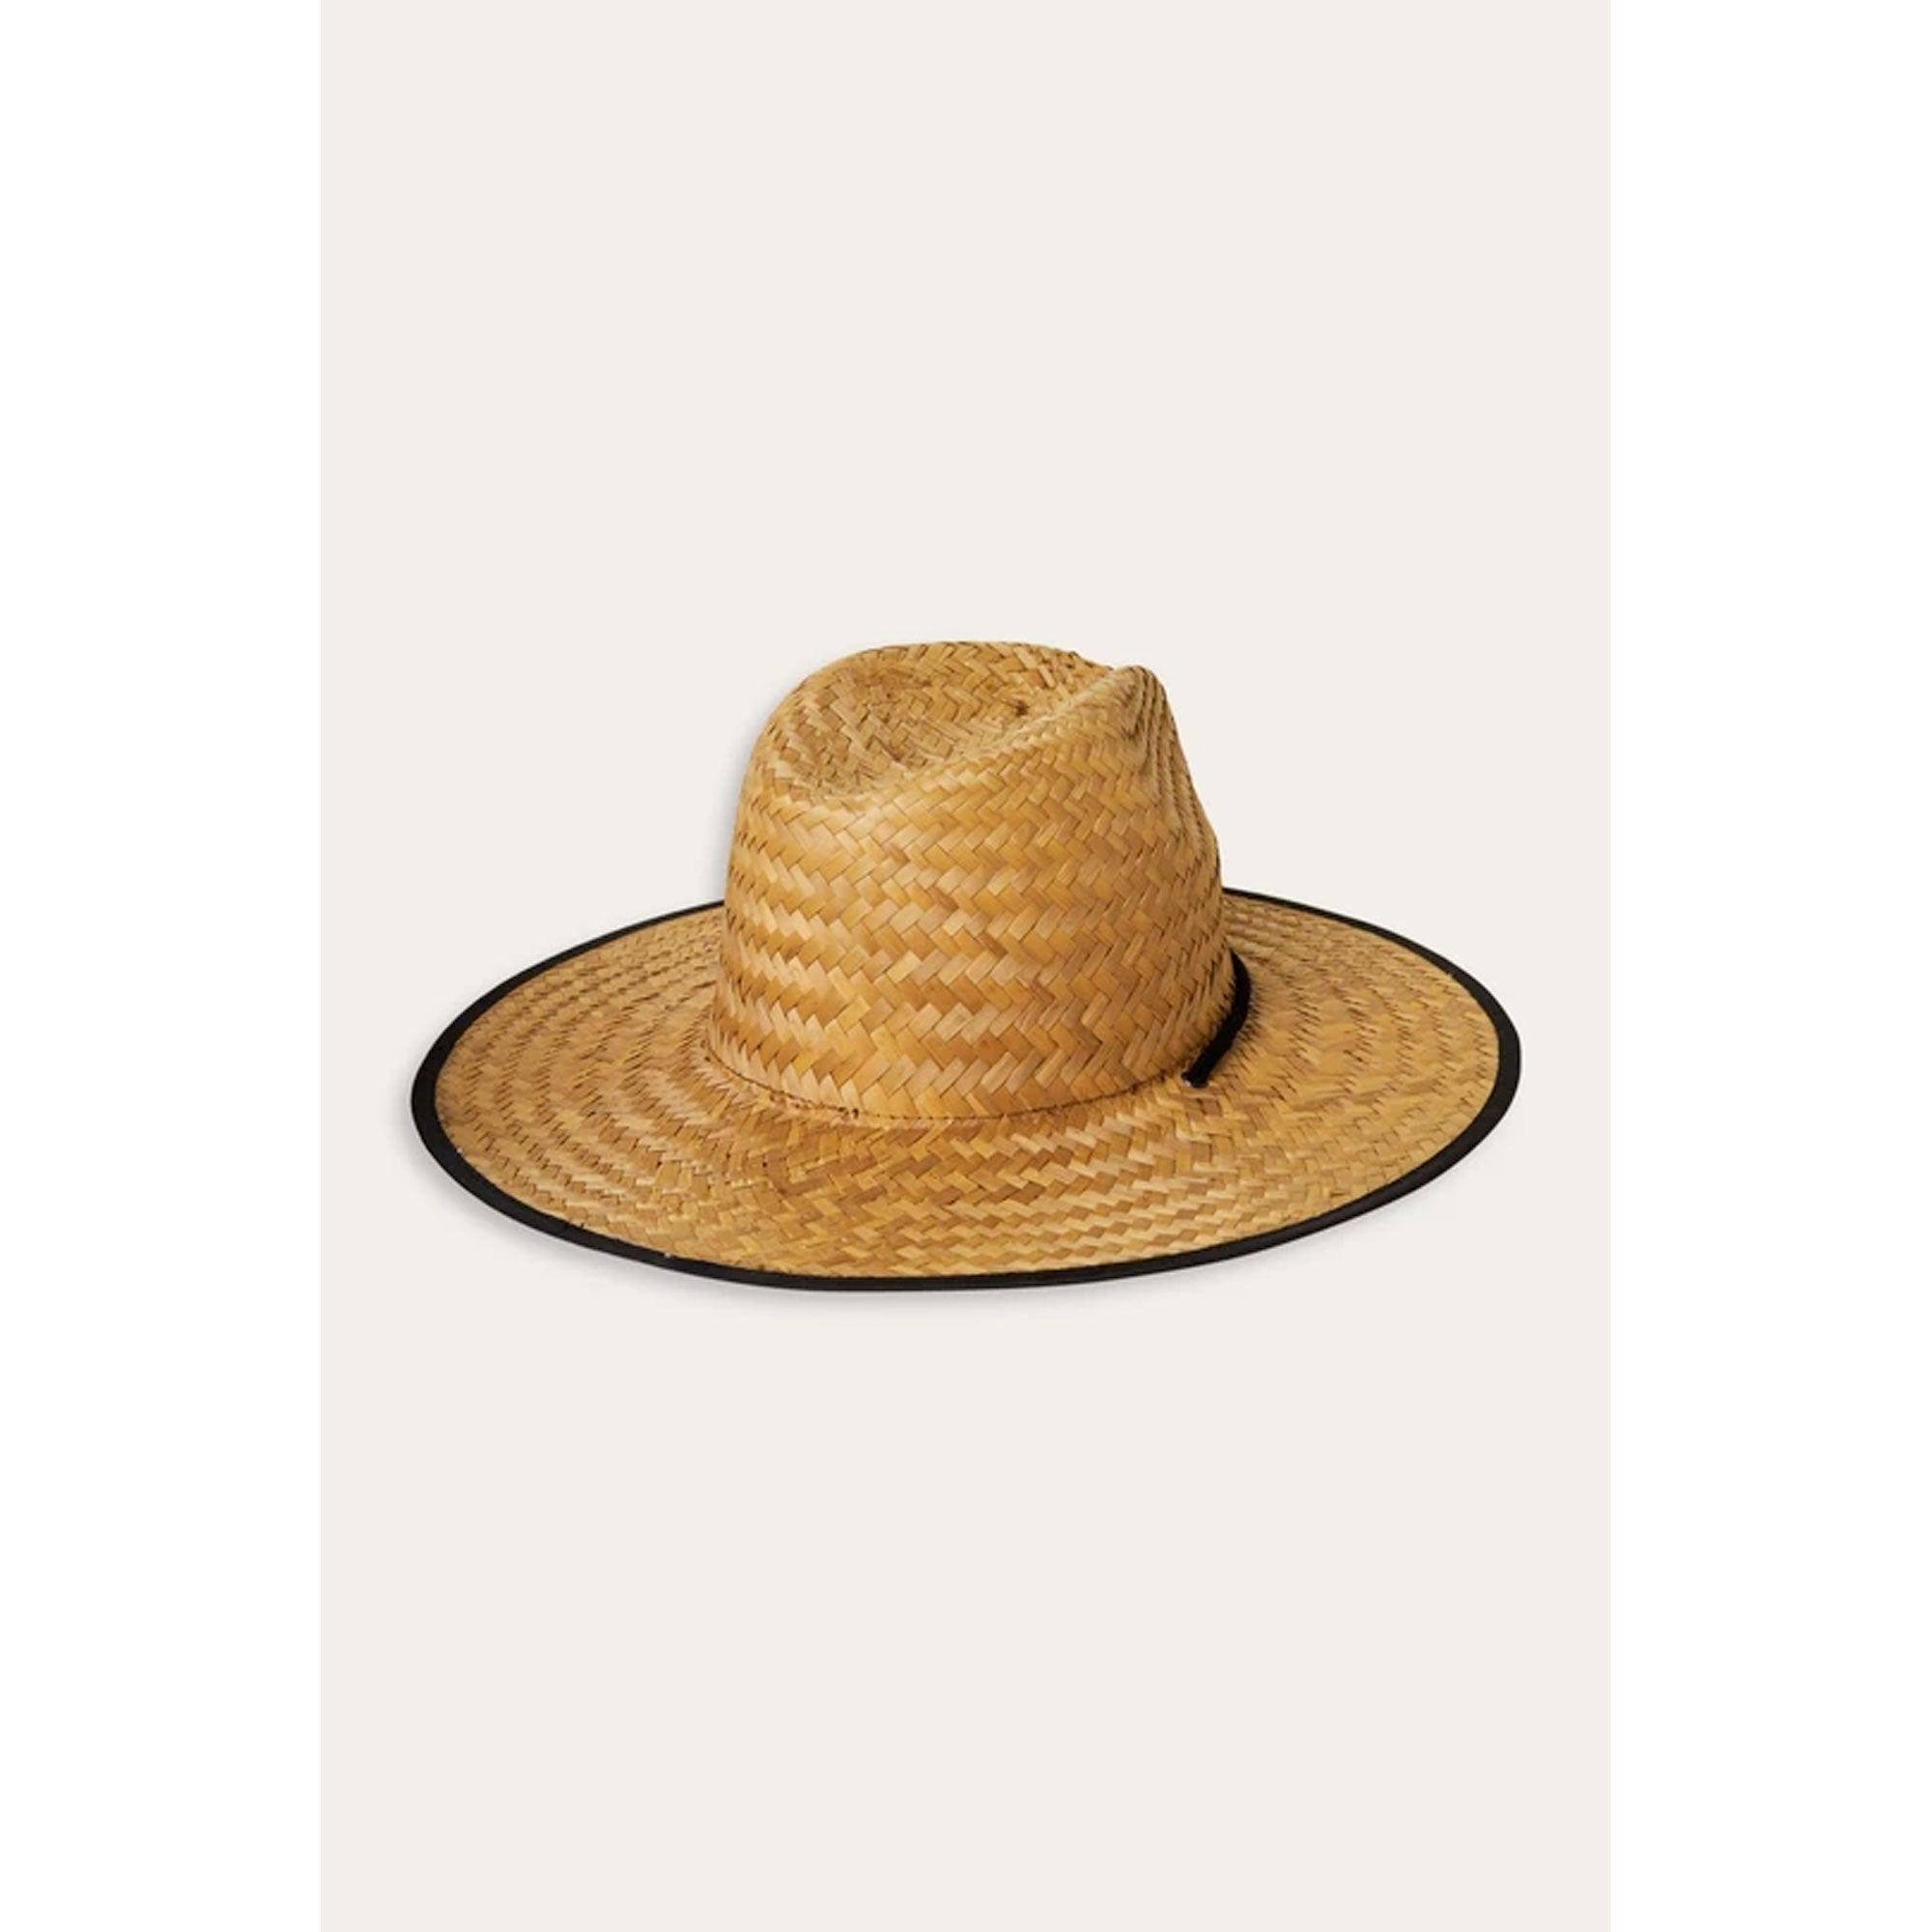 O'Neill Palm Road Men's Straw Hat